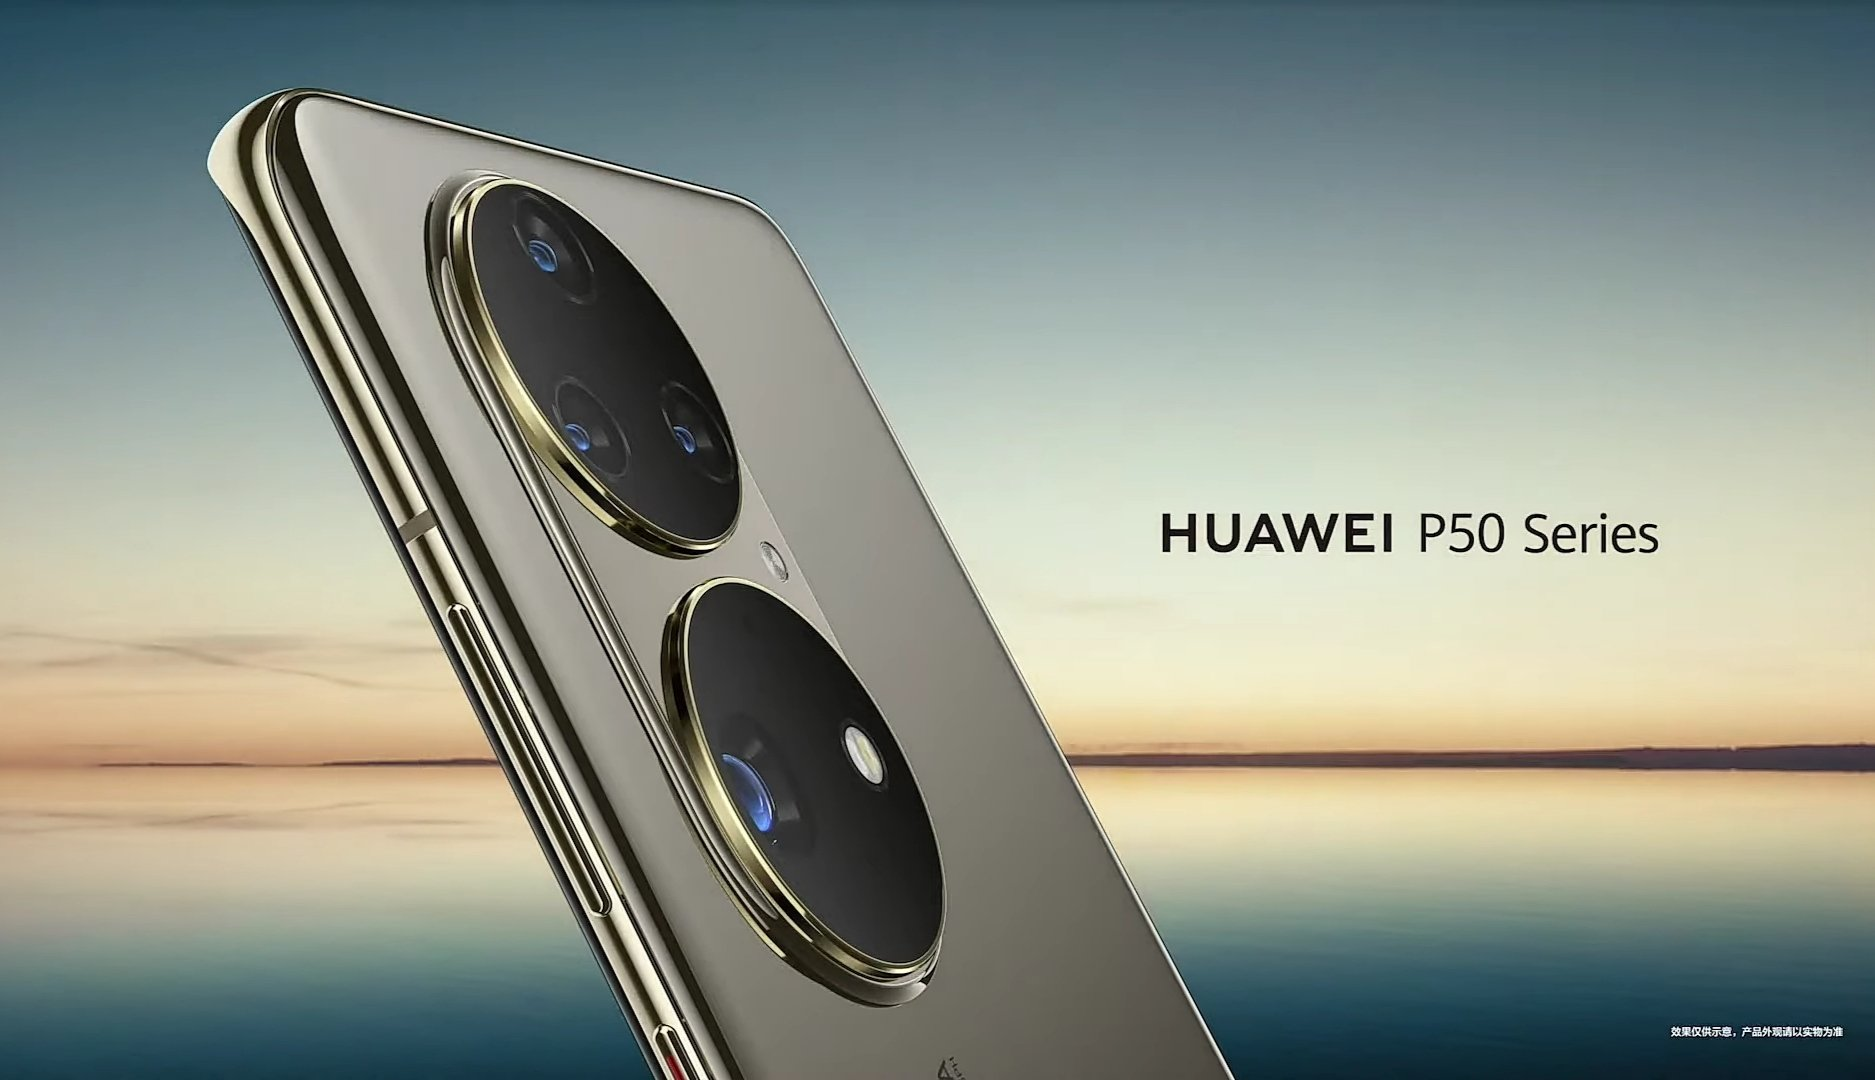 Huawei confirms the launch for its P50 series on 29th July